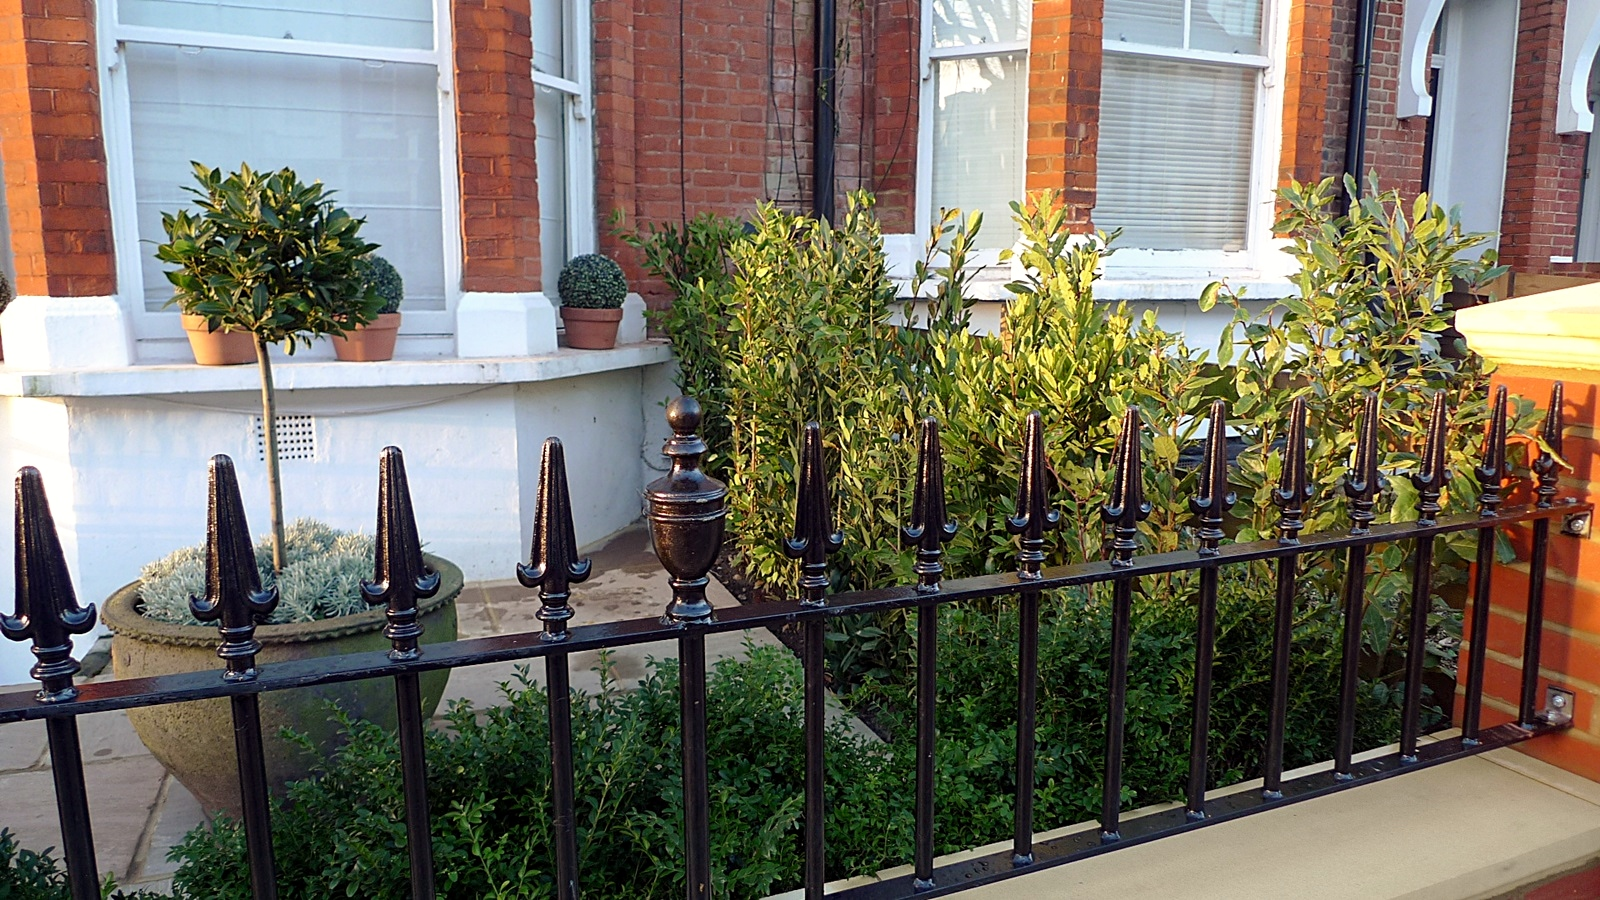 front garden ideas london unique front garden ideas london linsey evans victorian best style - Garden Ideas London